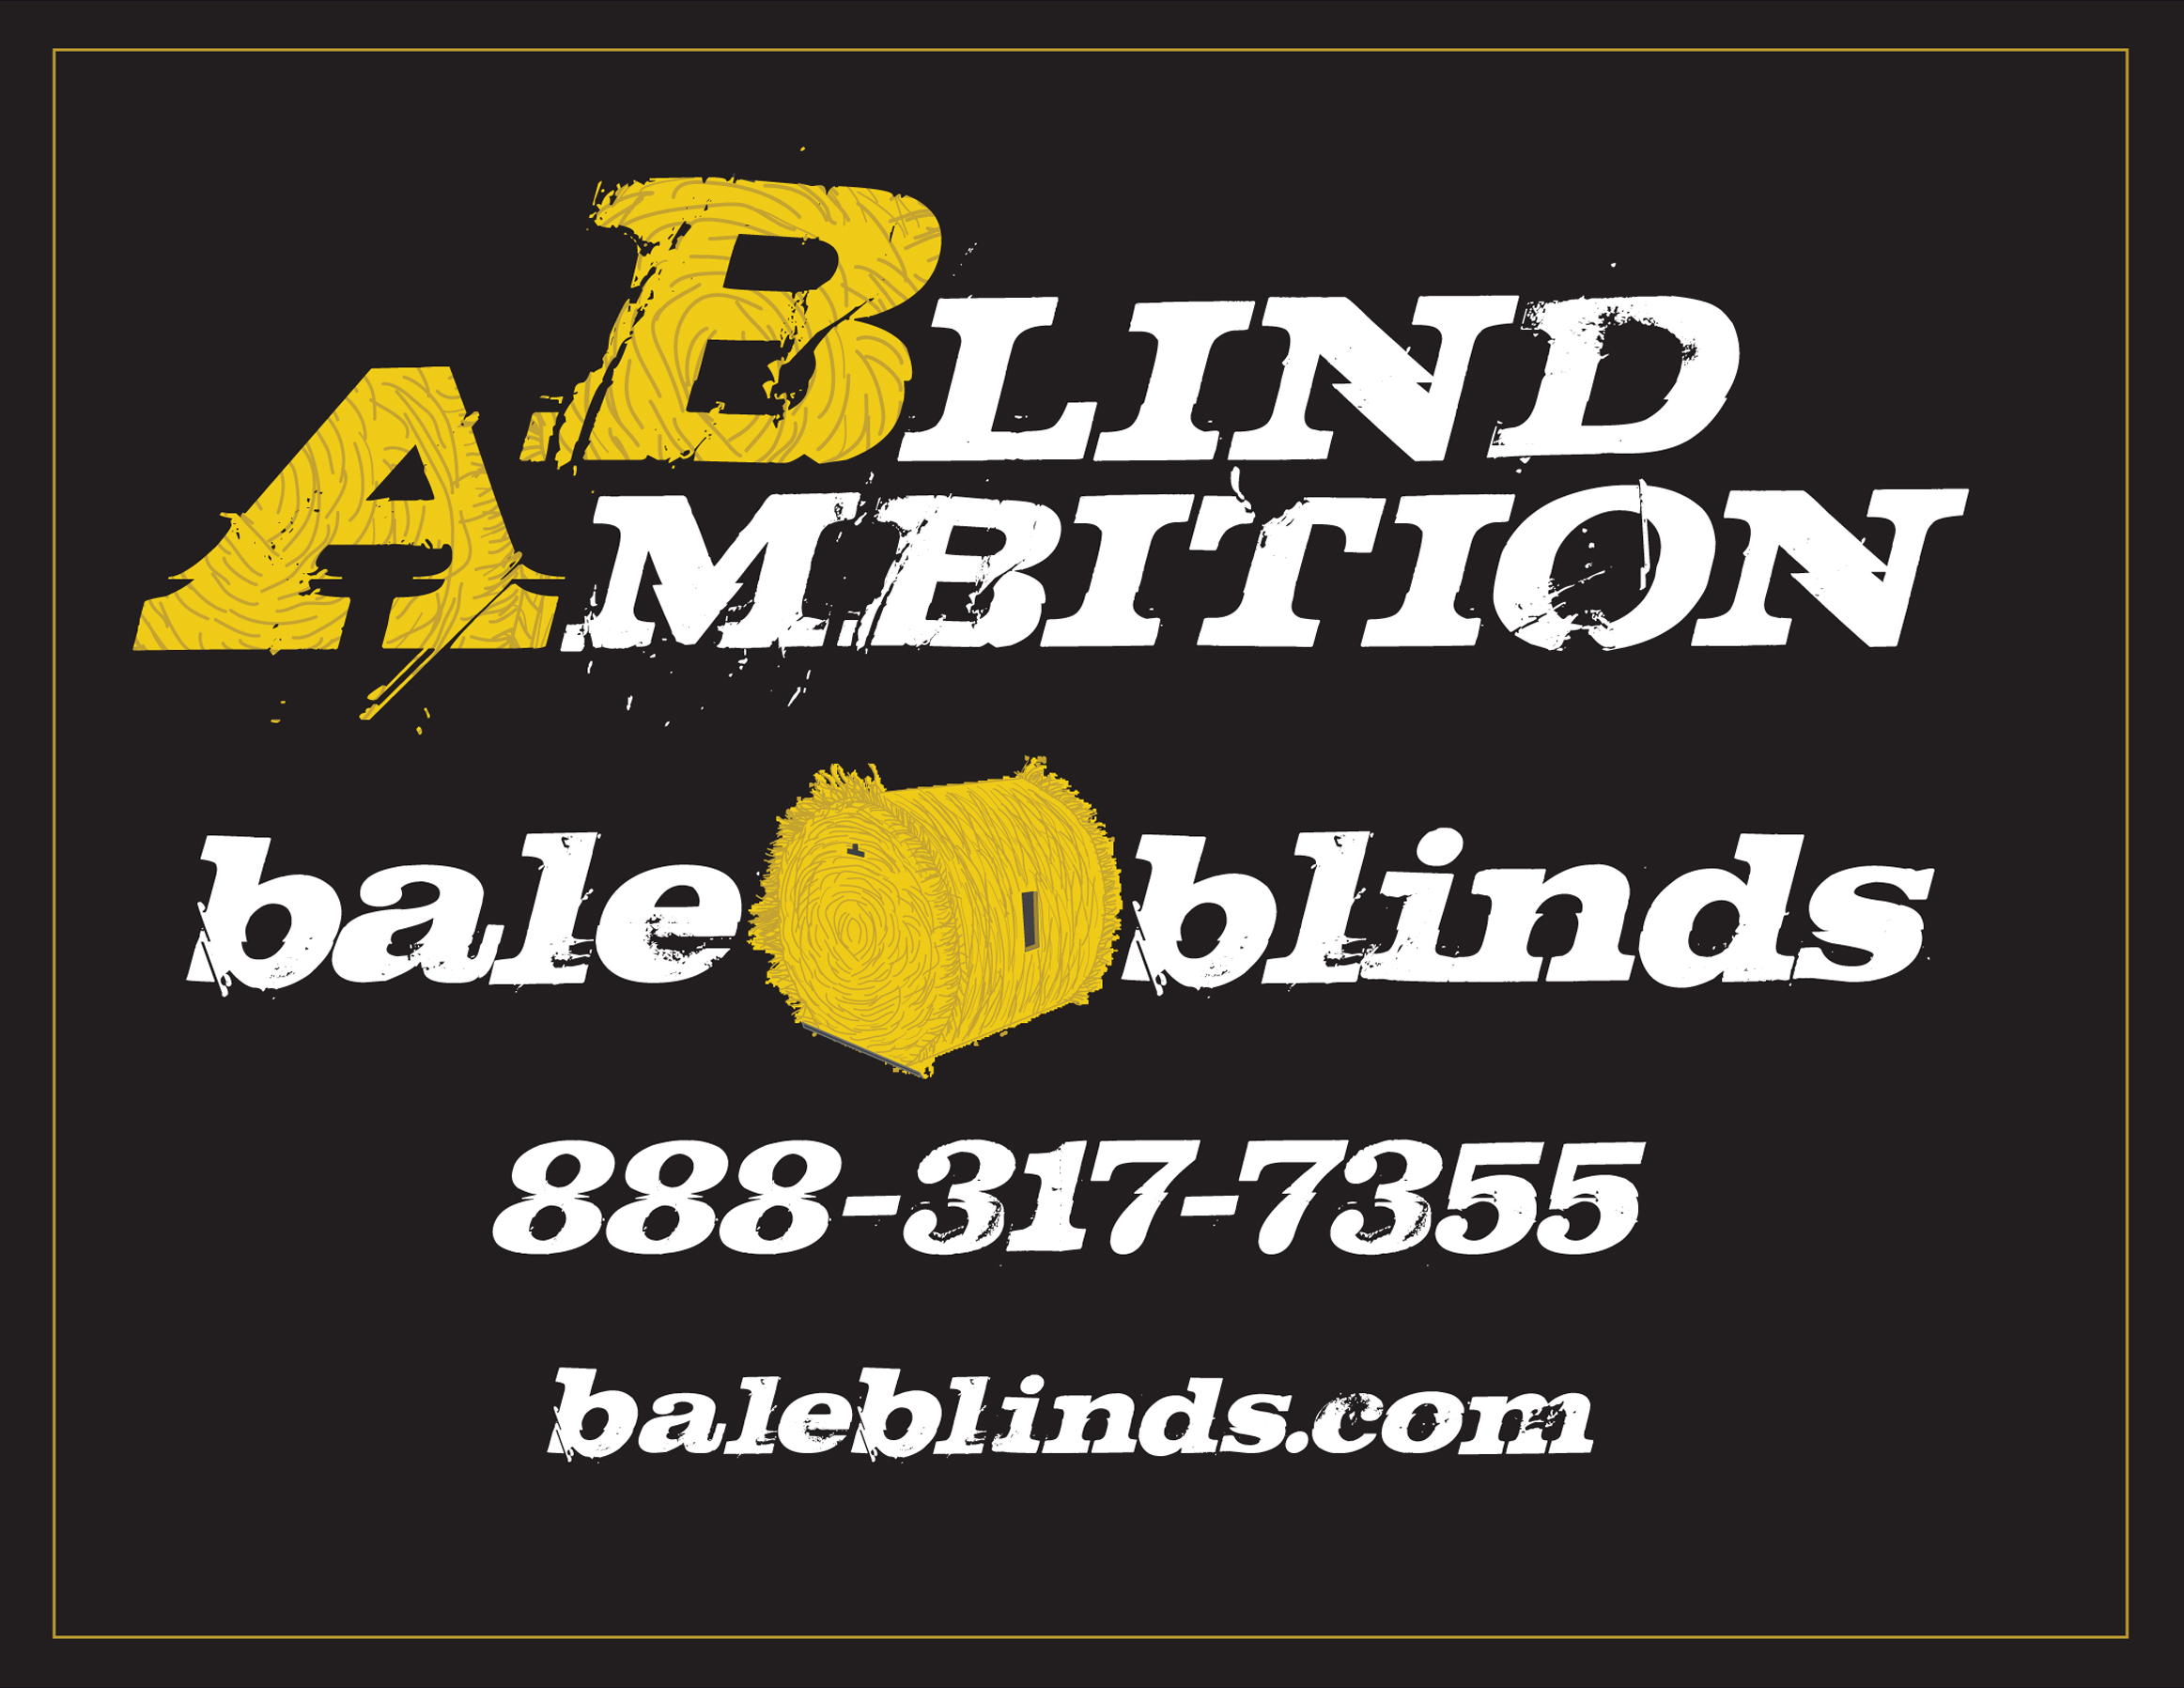 hay bale blinds by Blind Ambitions Bale Blinds - hunting blinds for deer hunting and waterfowl hunting